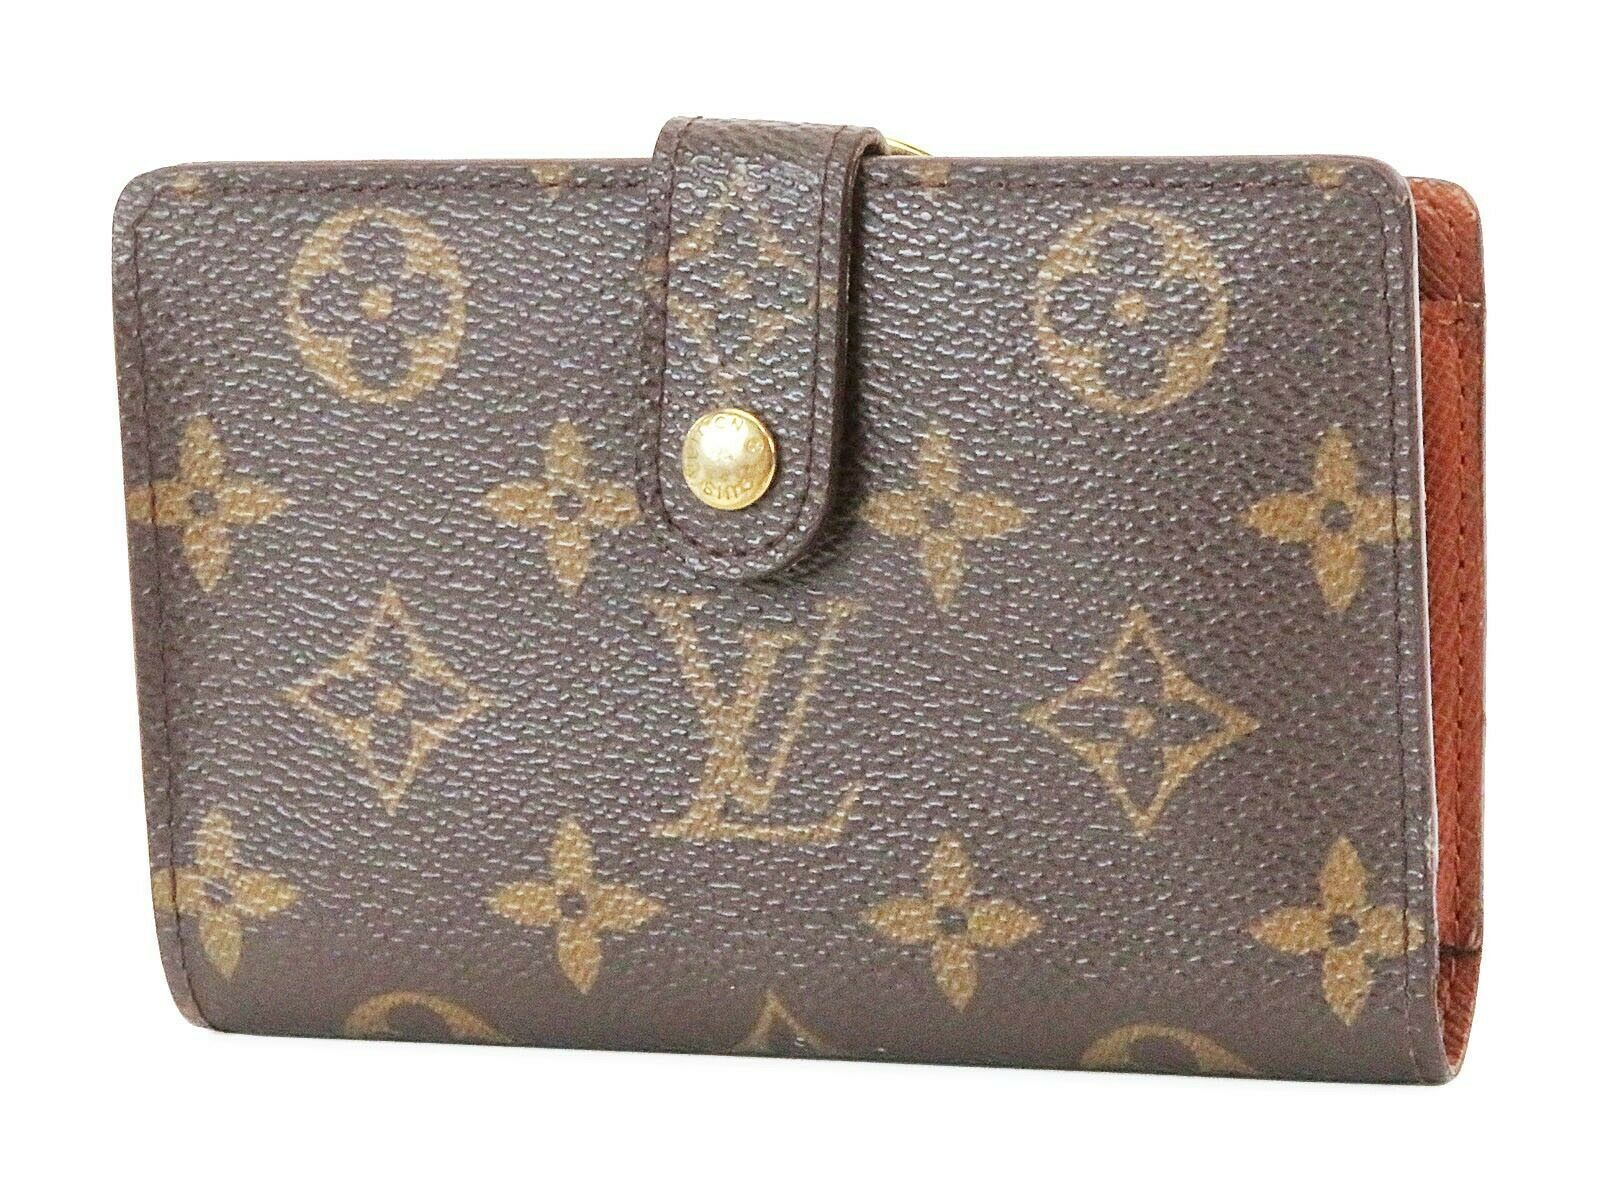 Primary image for Authentic LOUIS VUITTON French Kisslock Monogram Wallet Coin Purse #37200